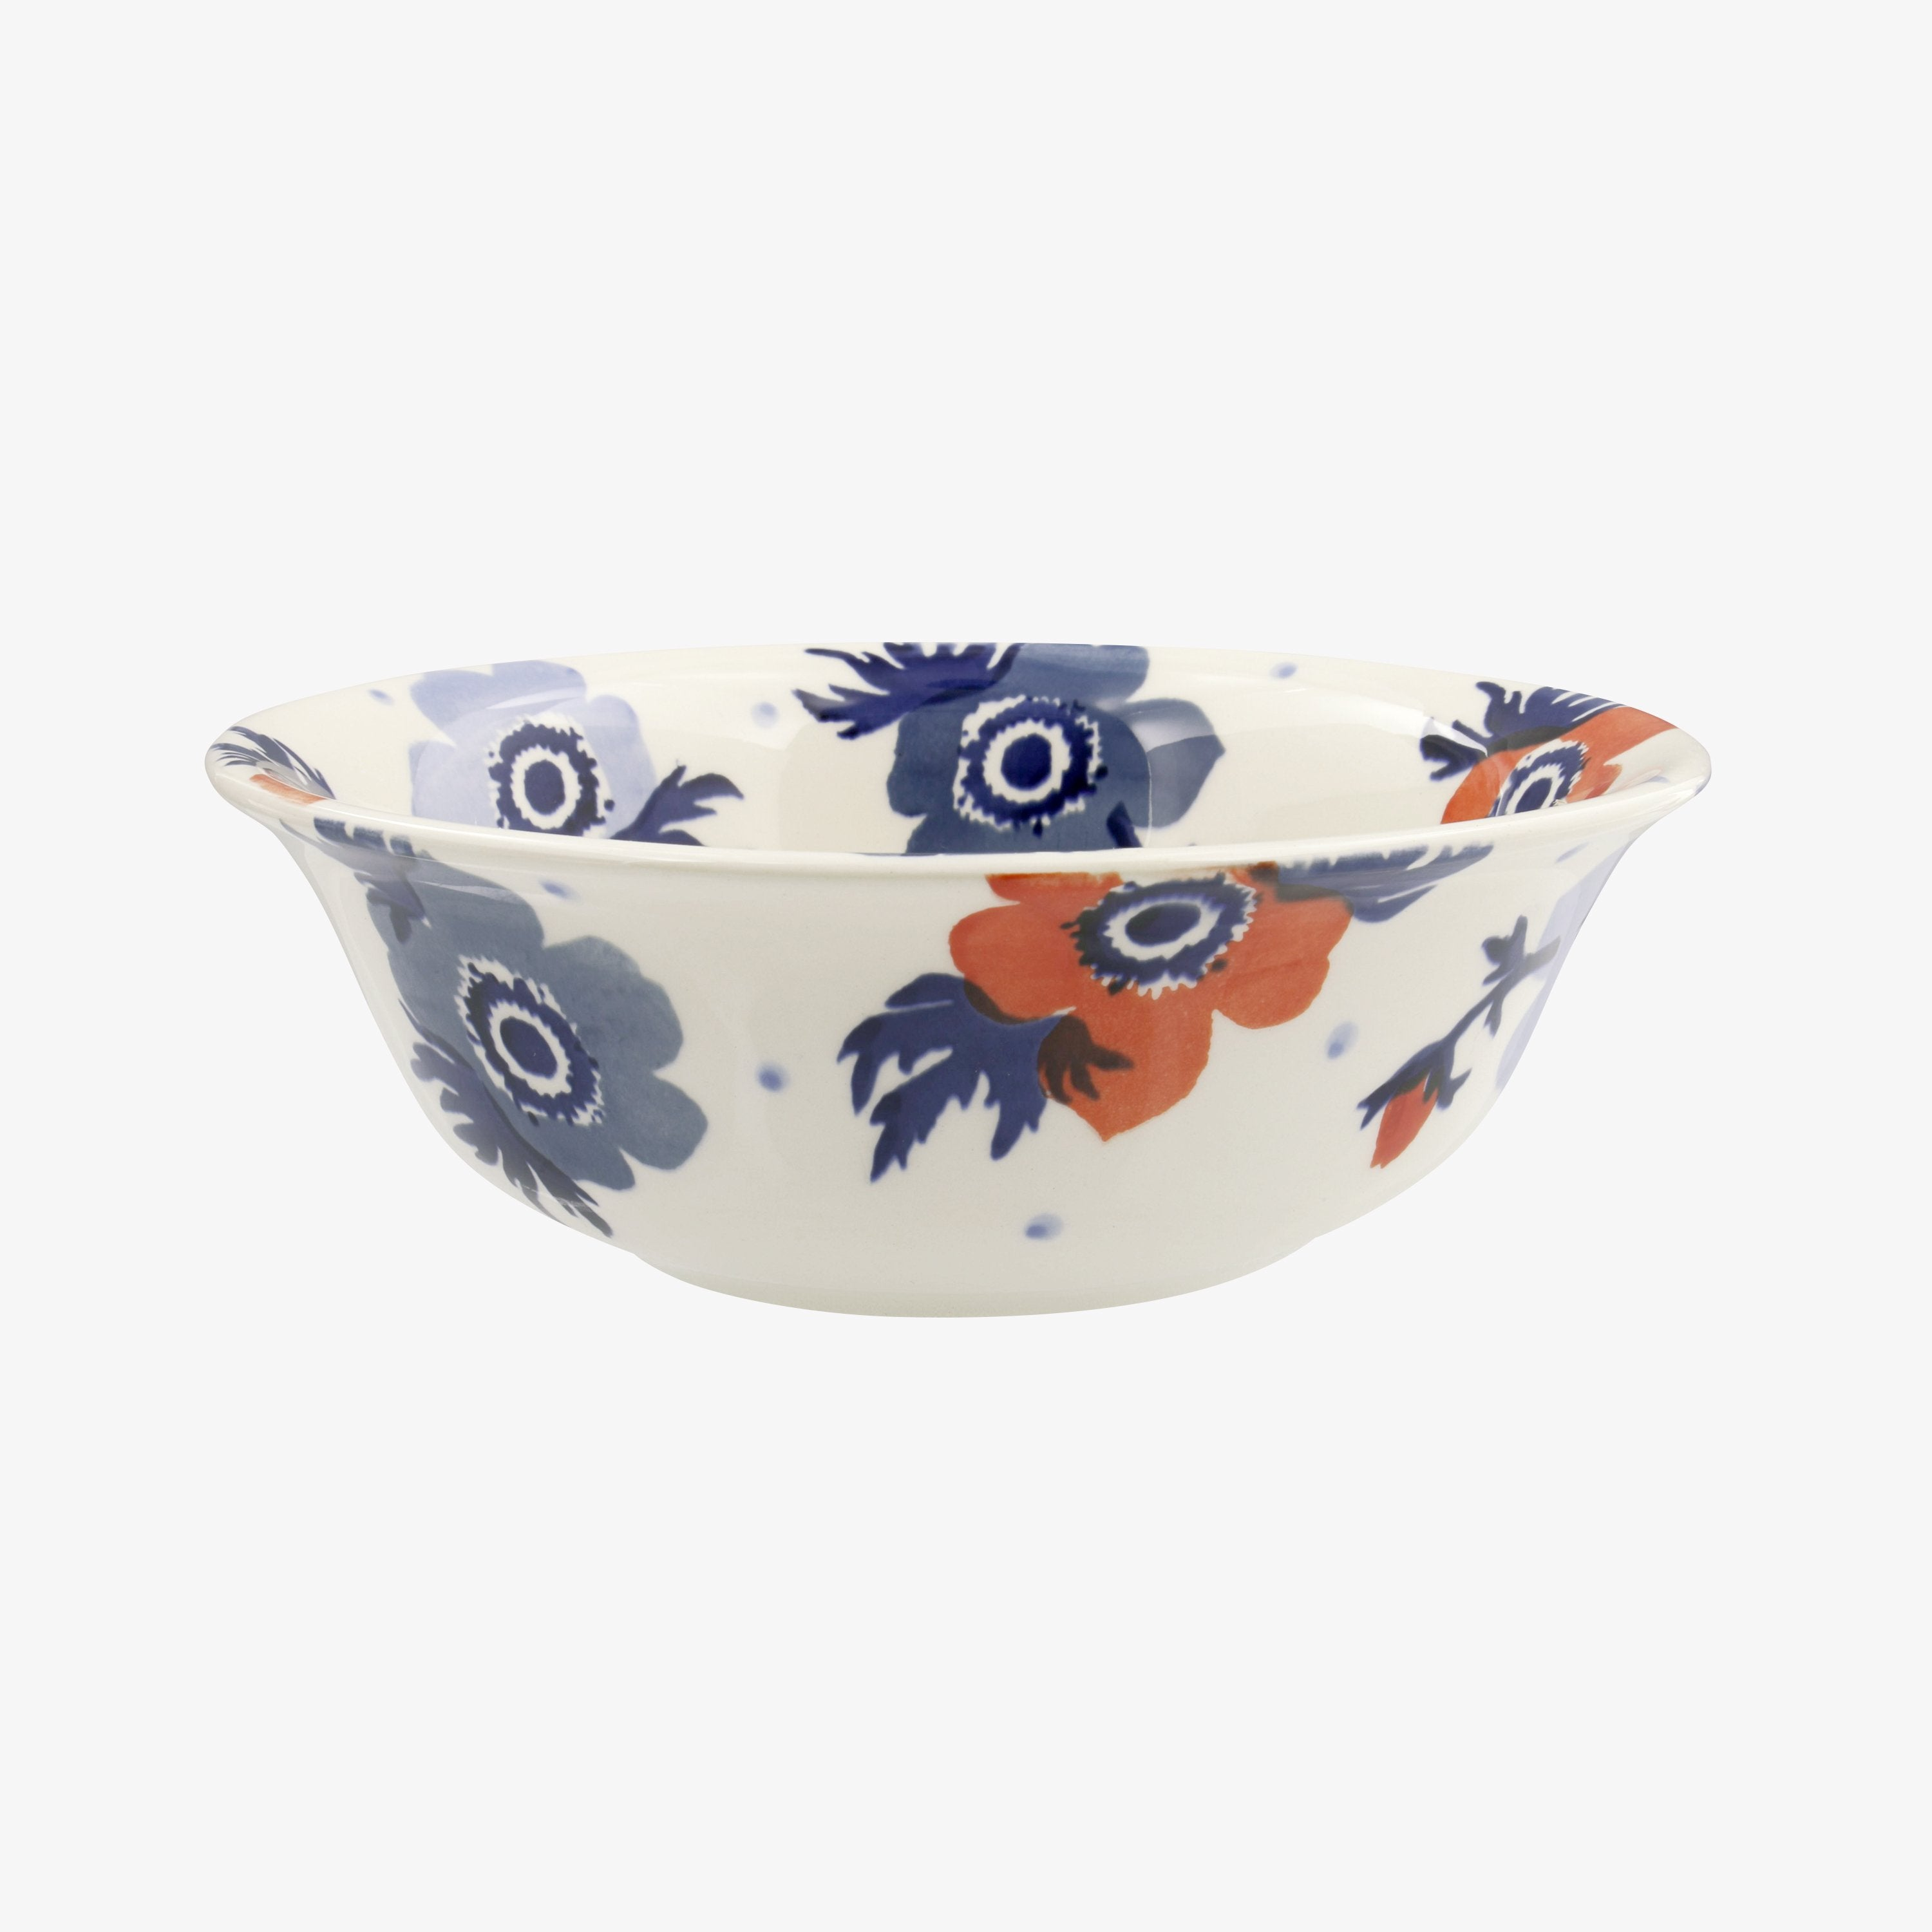 Image of Anemone Cereal Bowl